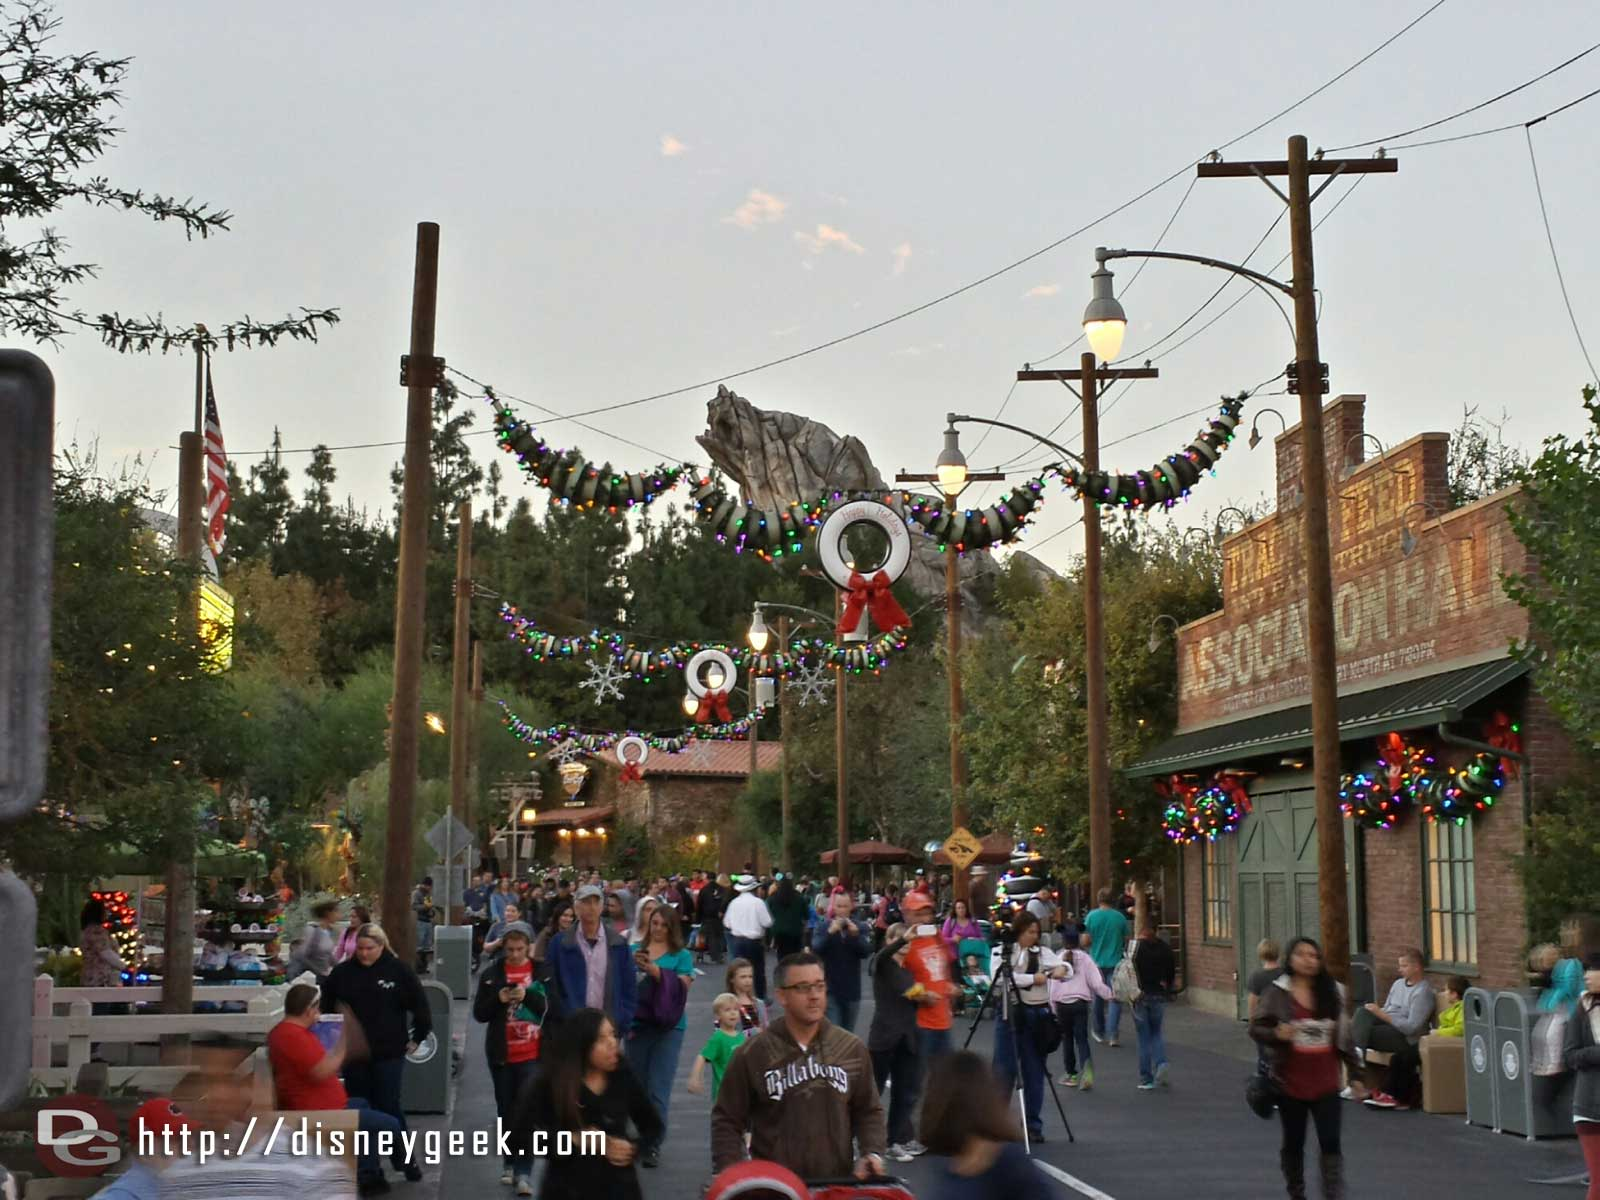 Route 66 with Grizzly Peak in the background #CarsLand